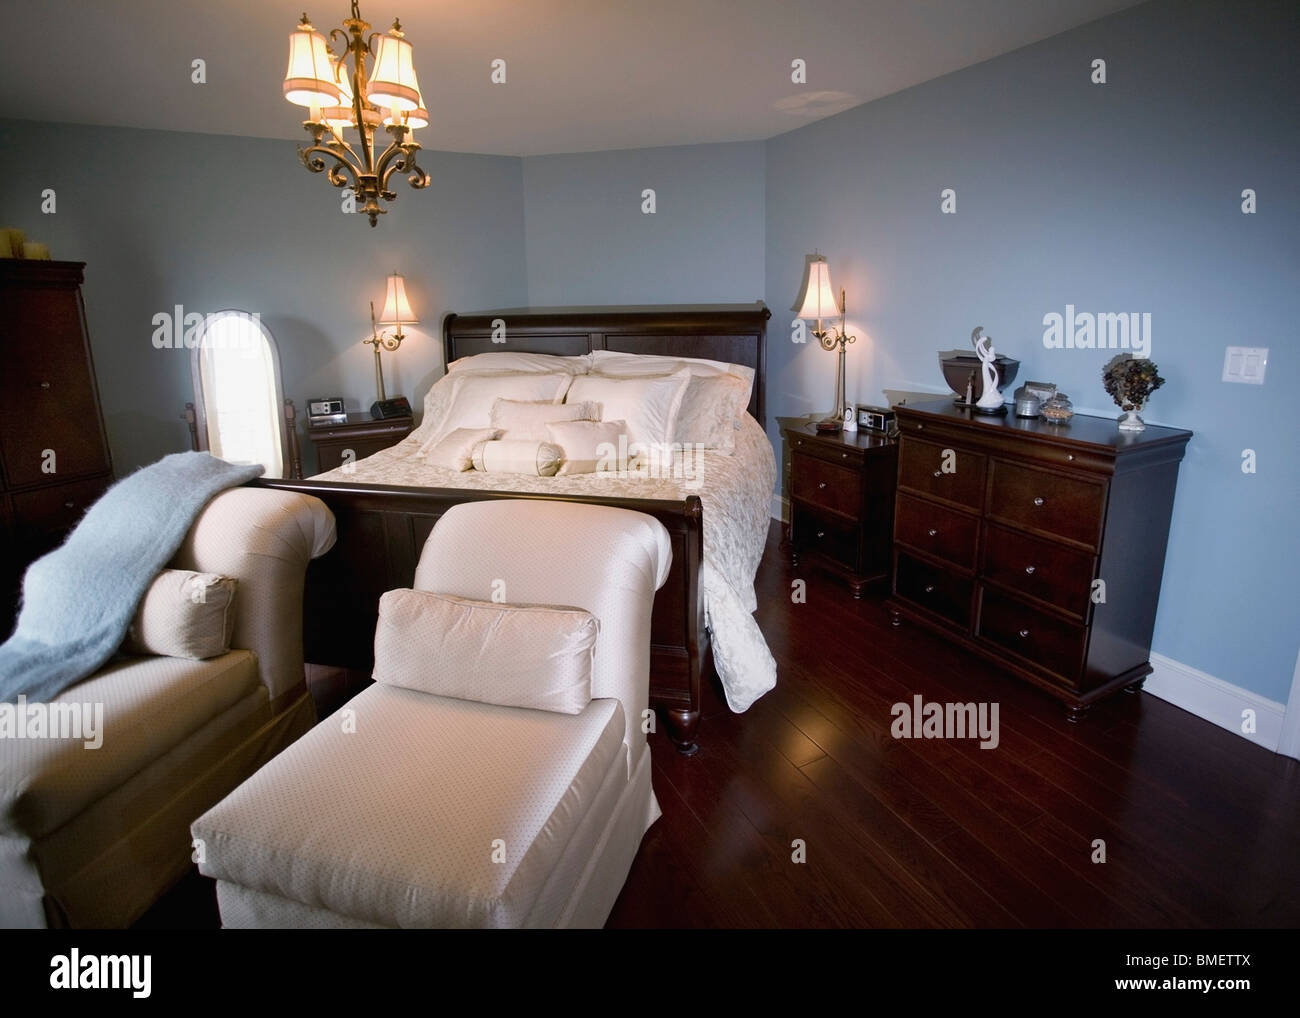 - A Bedroom With Chaise Lounge Chairs At The Foot Of The Bed Stock